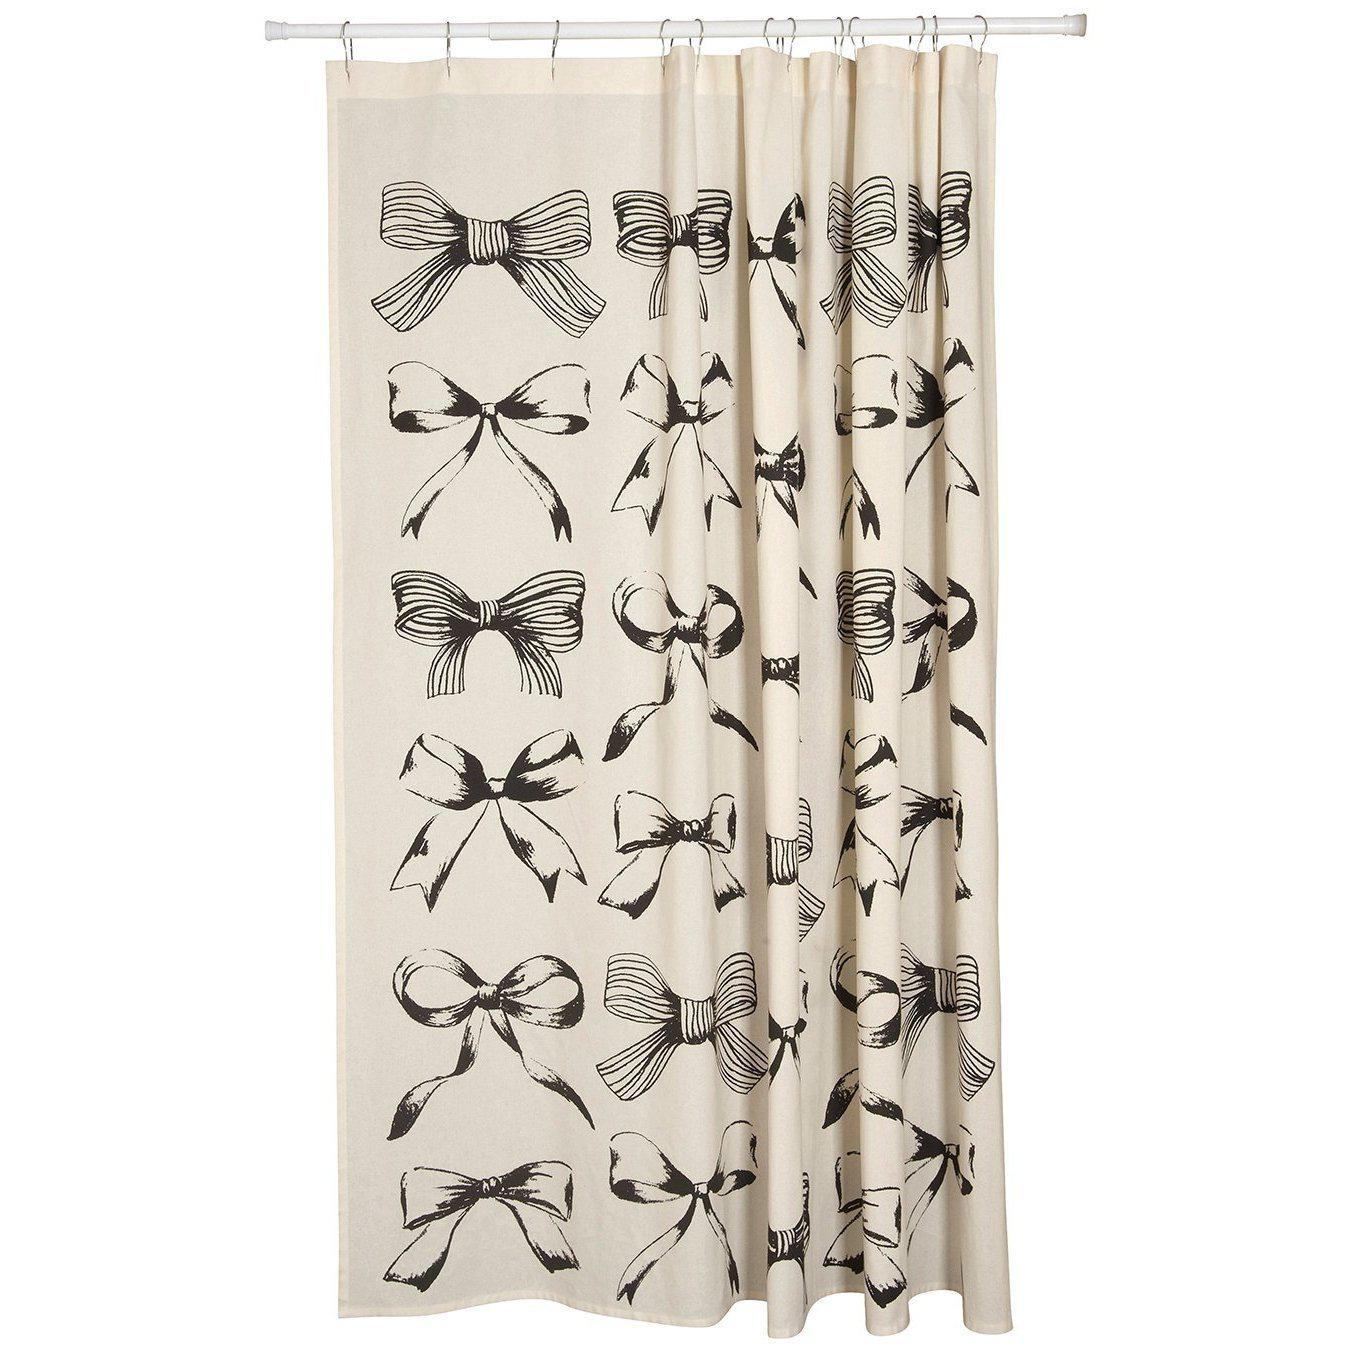 Vintage Bows Shower Curtain